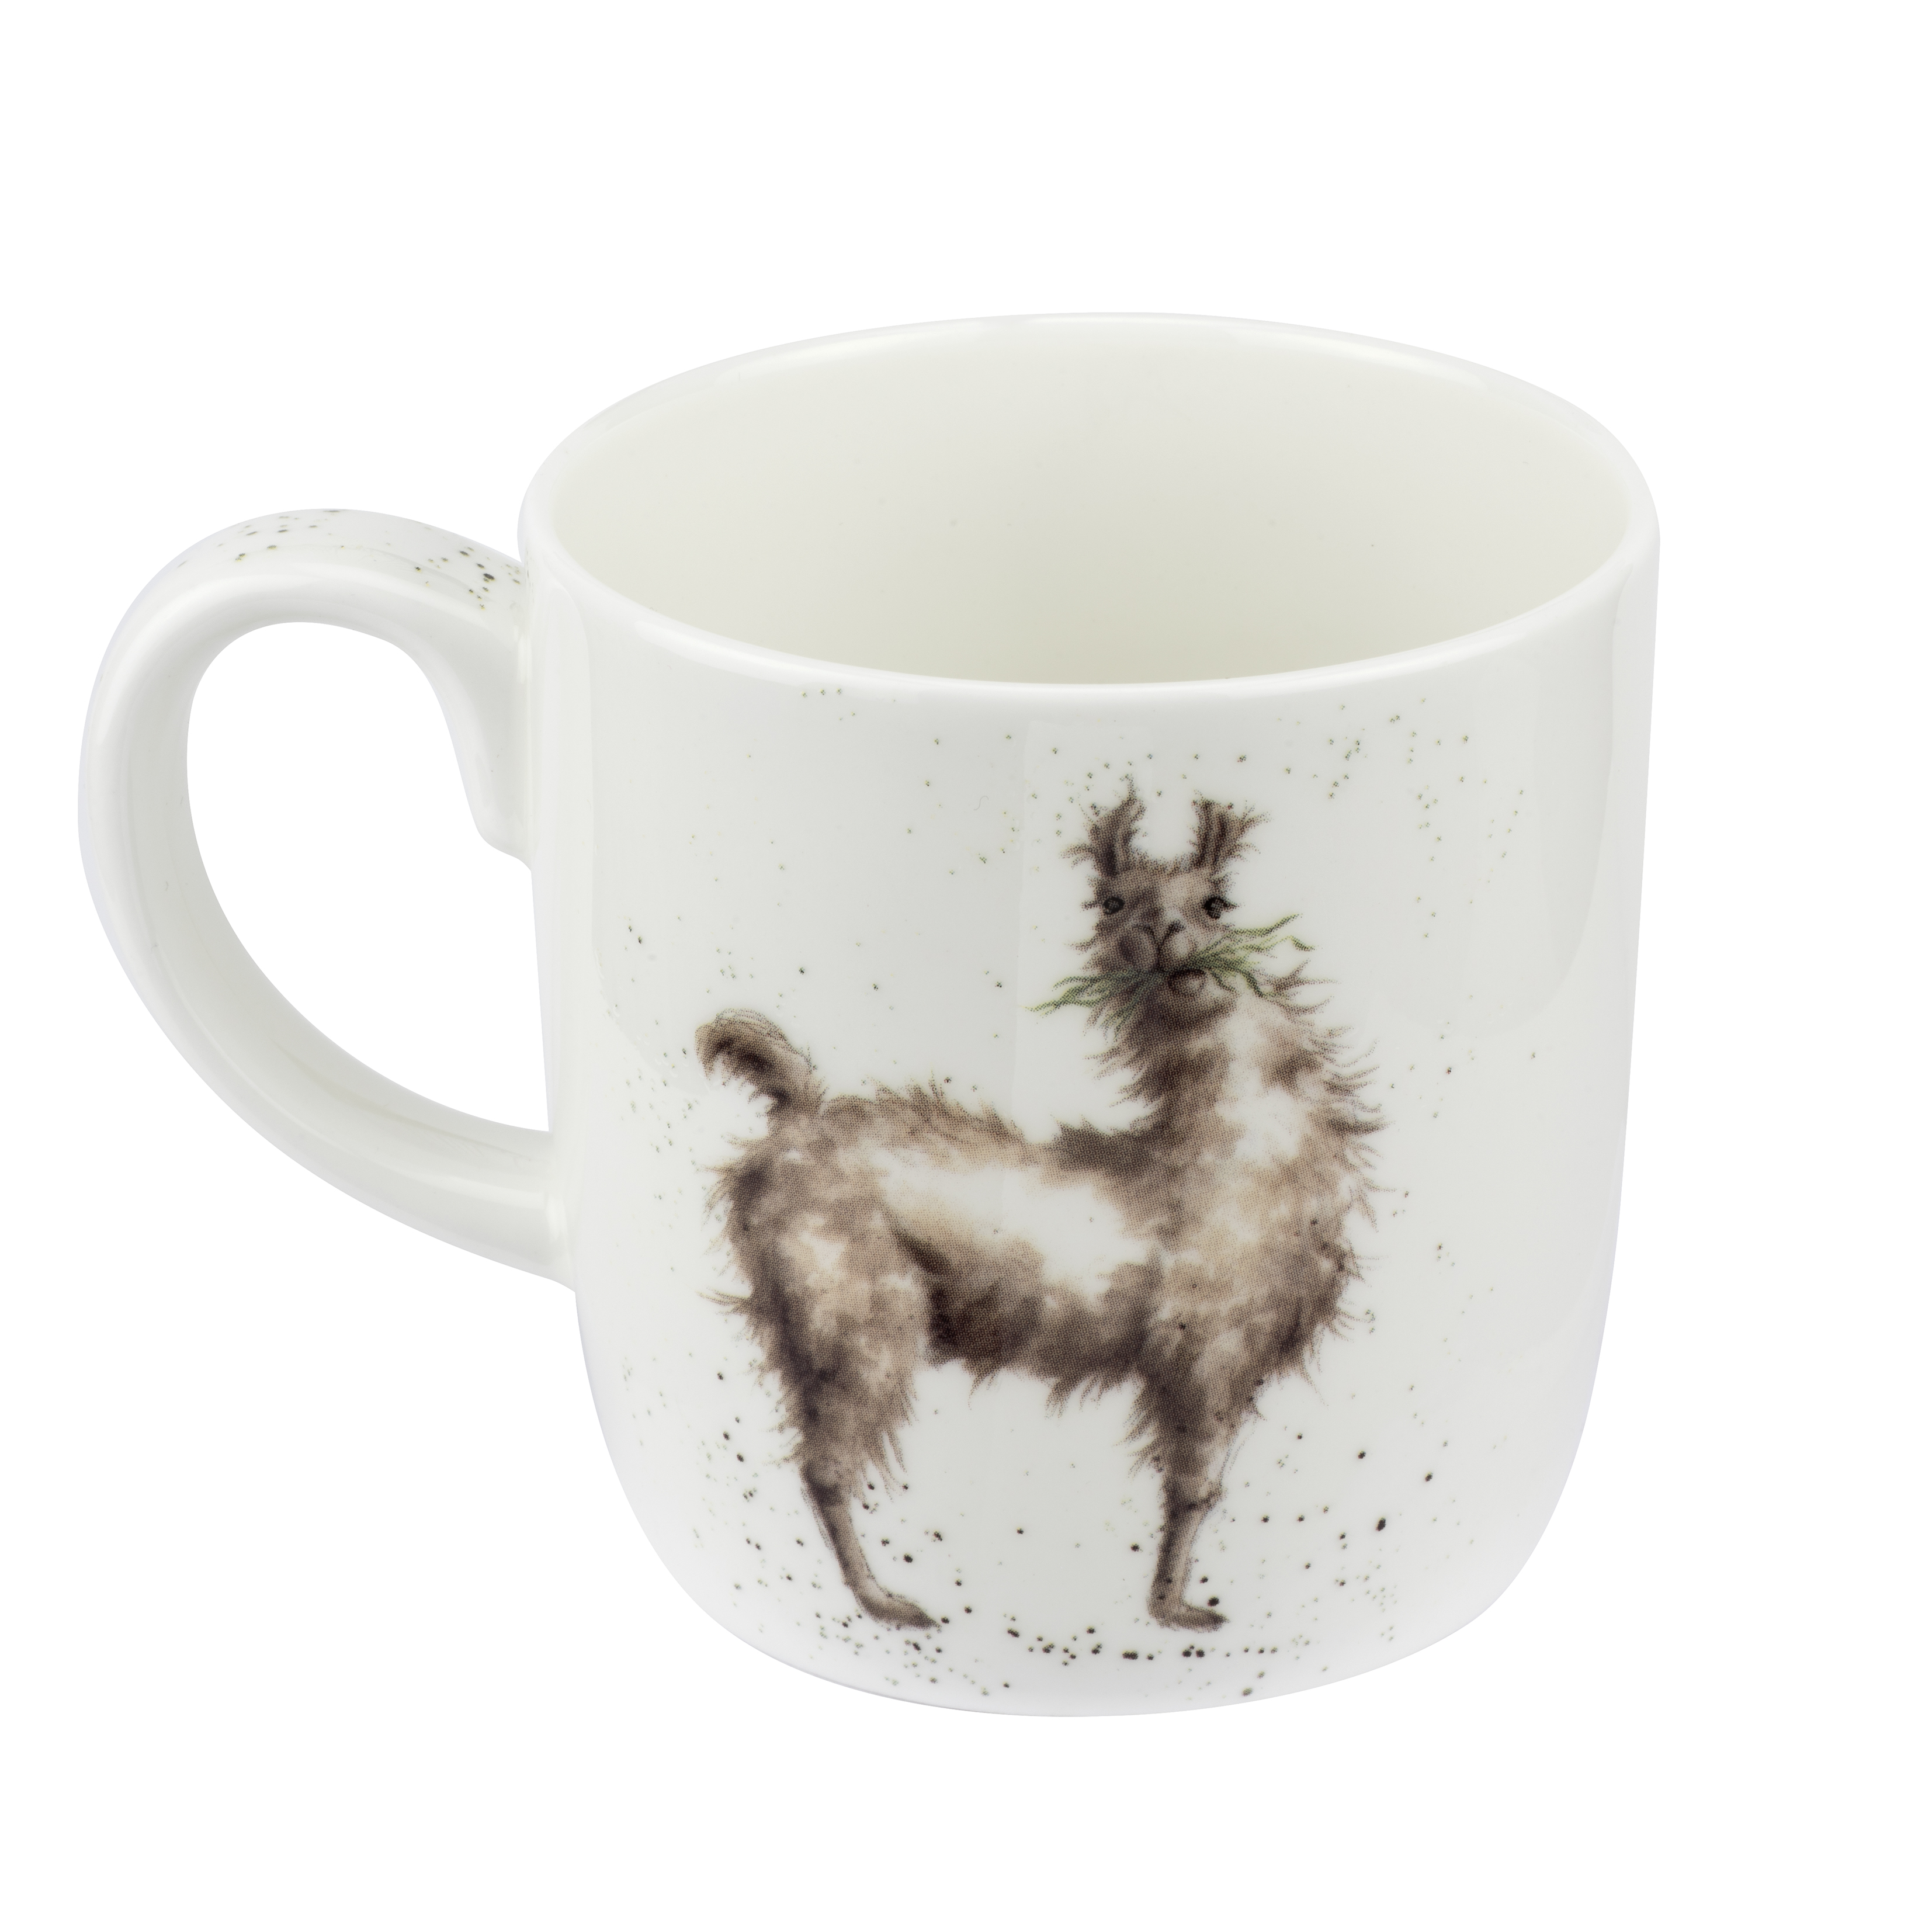 Royal Worcester Wrendale Designs  Mug 14 Ounce Because I Am Worth It (Llama) image number 2